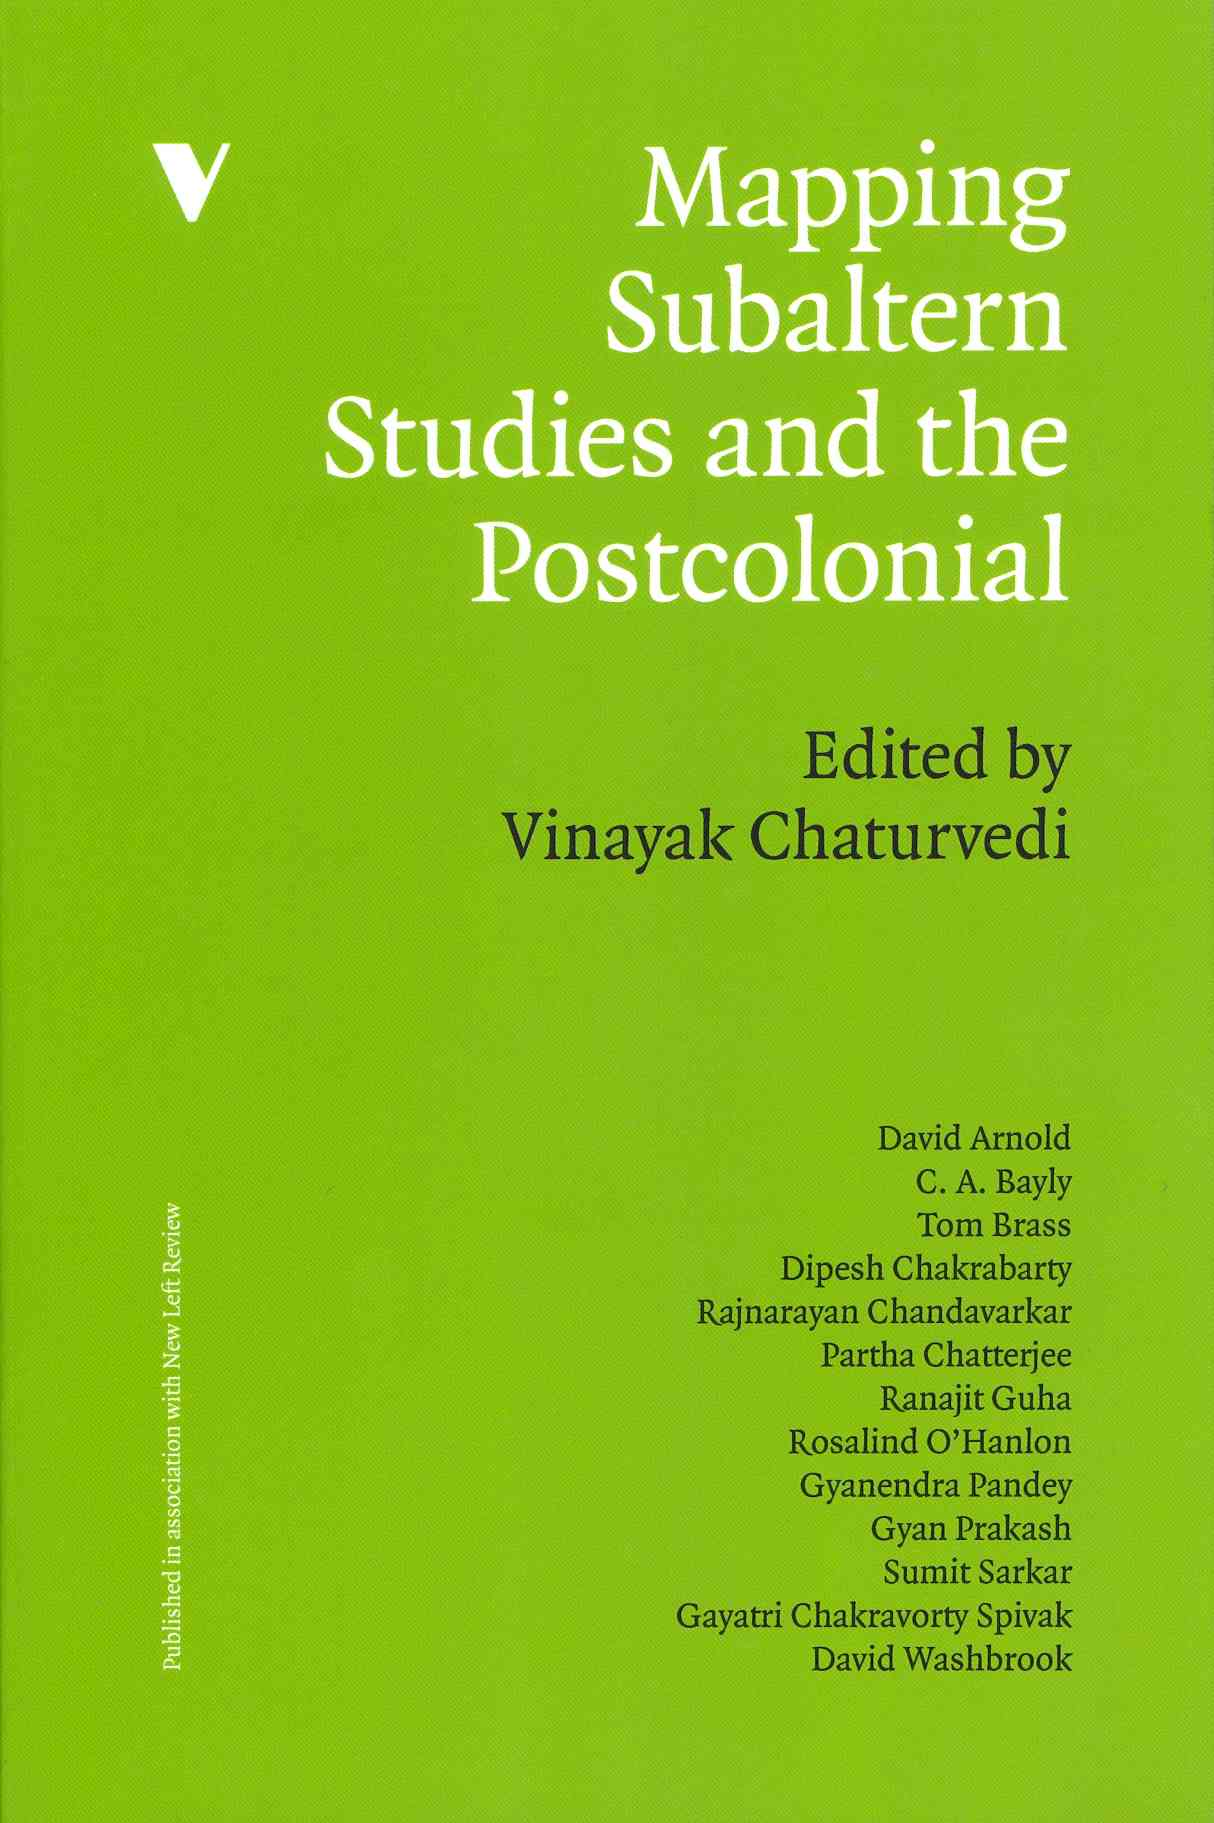 Mapping Subaltern Studies and the Postcolonial By Chaturvedi, Vinayak (EDT)